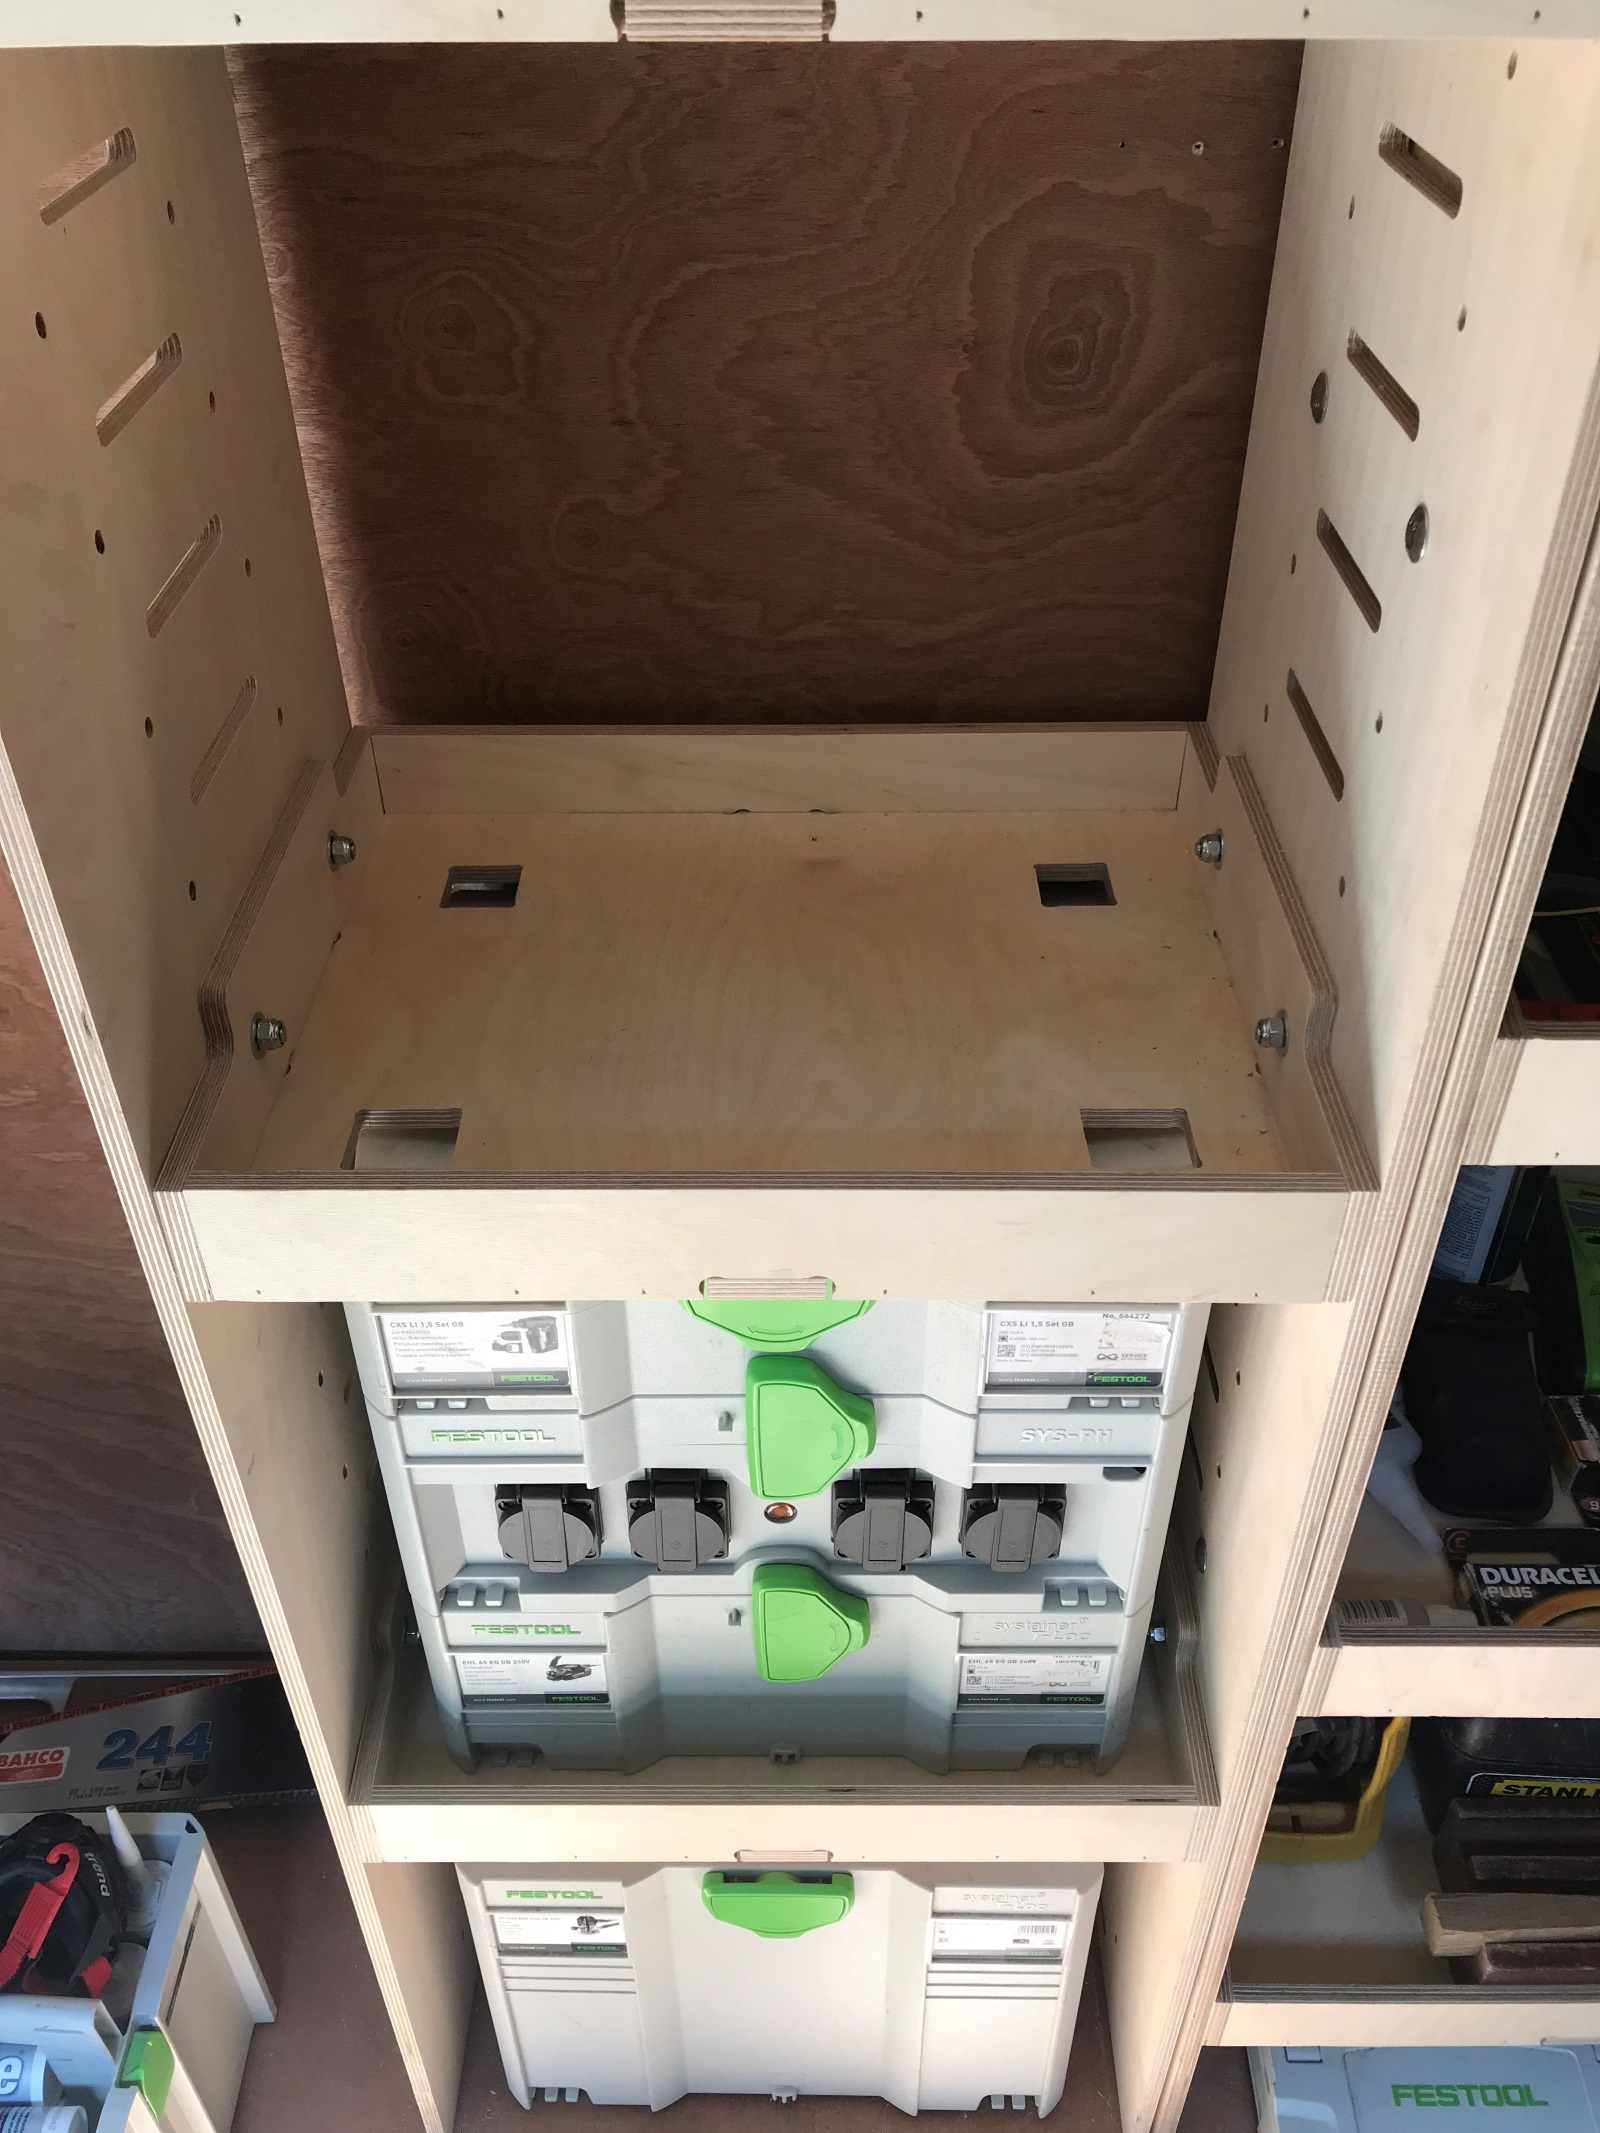 Festool Systainer Tanos Van Plywood Shelving And Racking